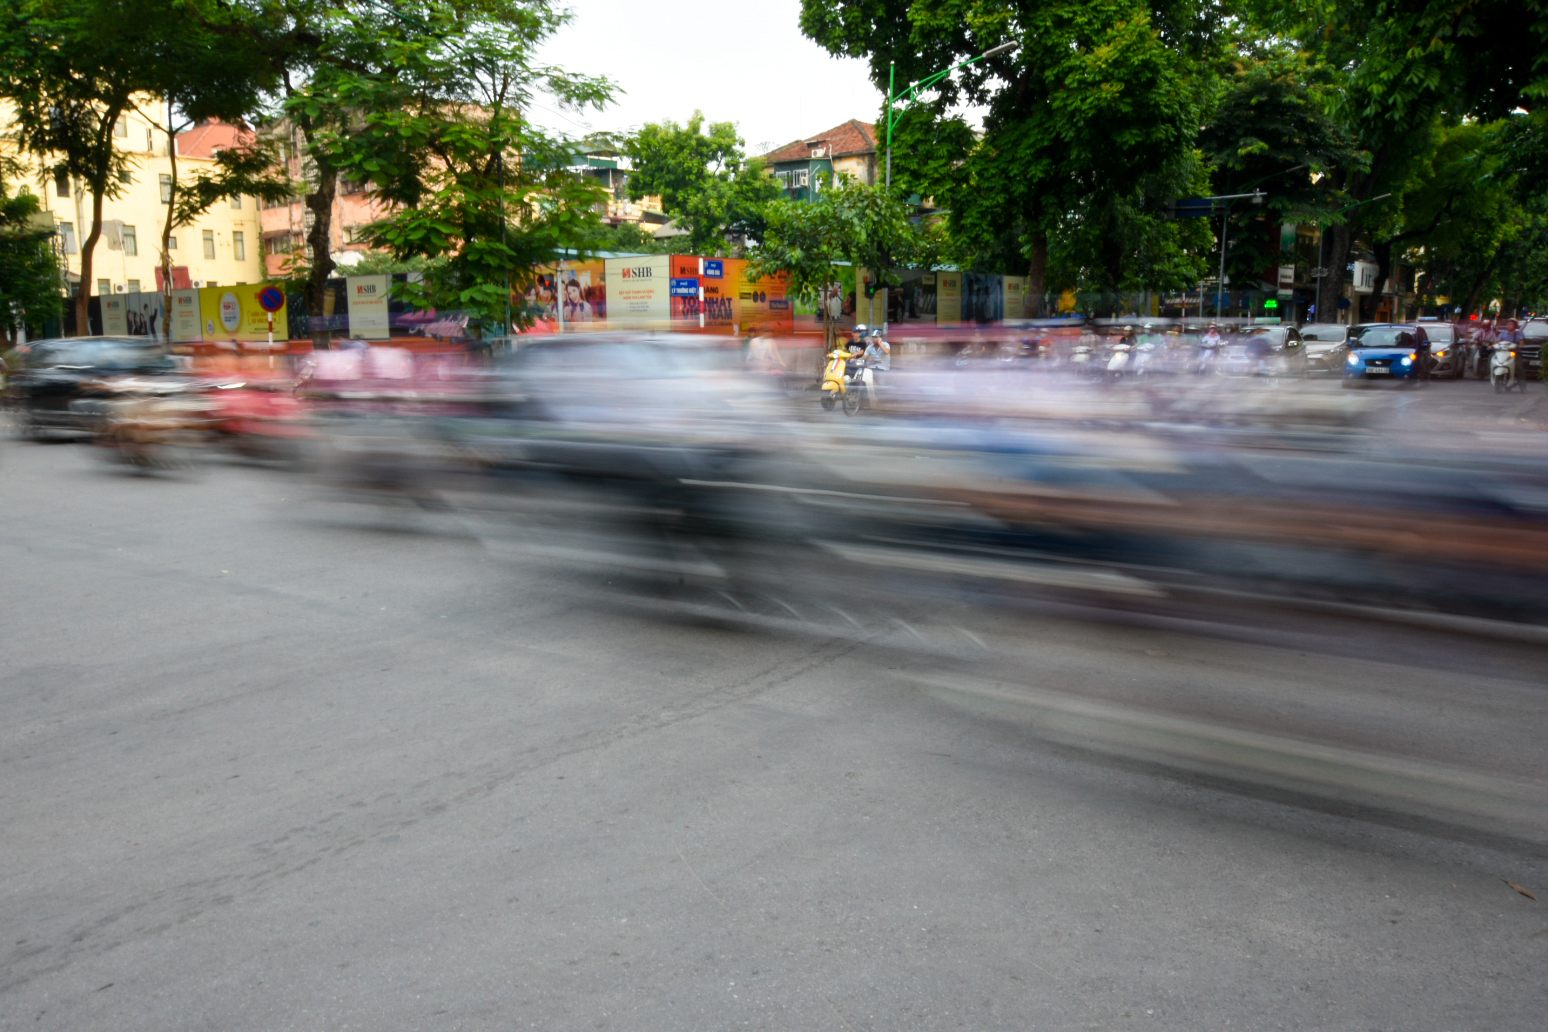 A mere 2 seconds of Hanoi traffic